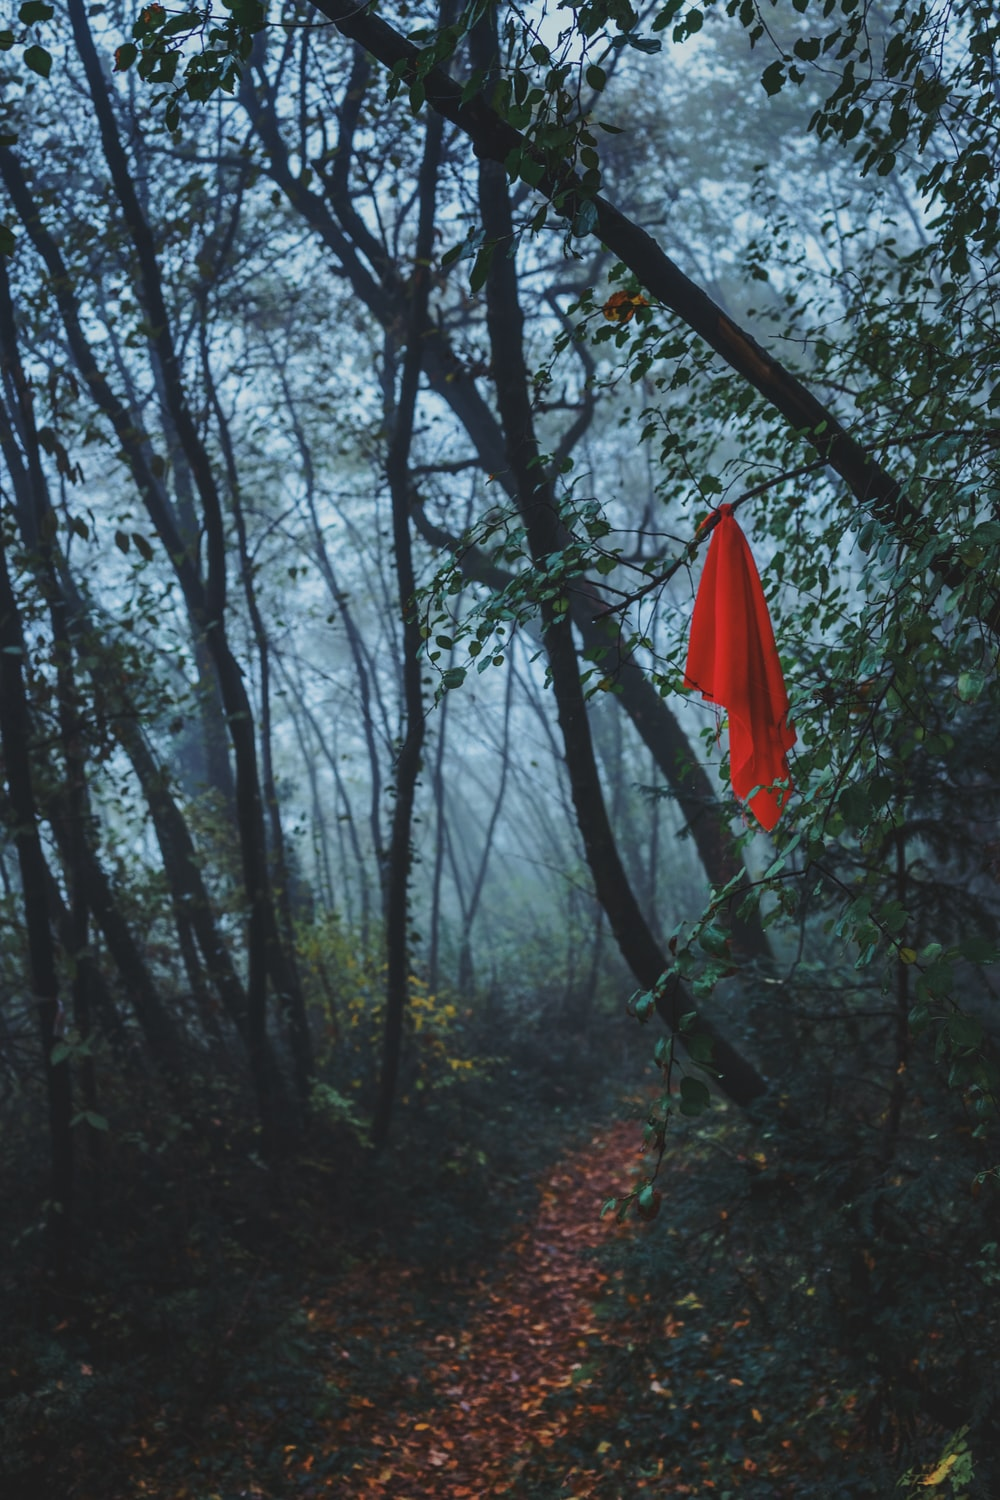 A red blanket hanging from a tree in a forest.